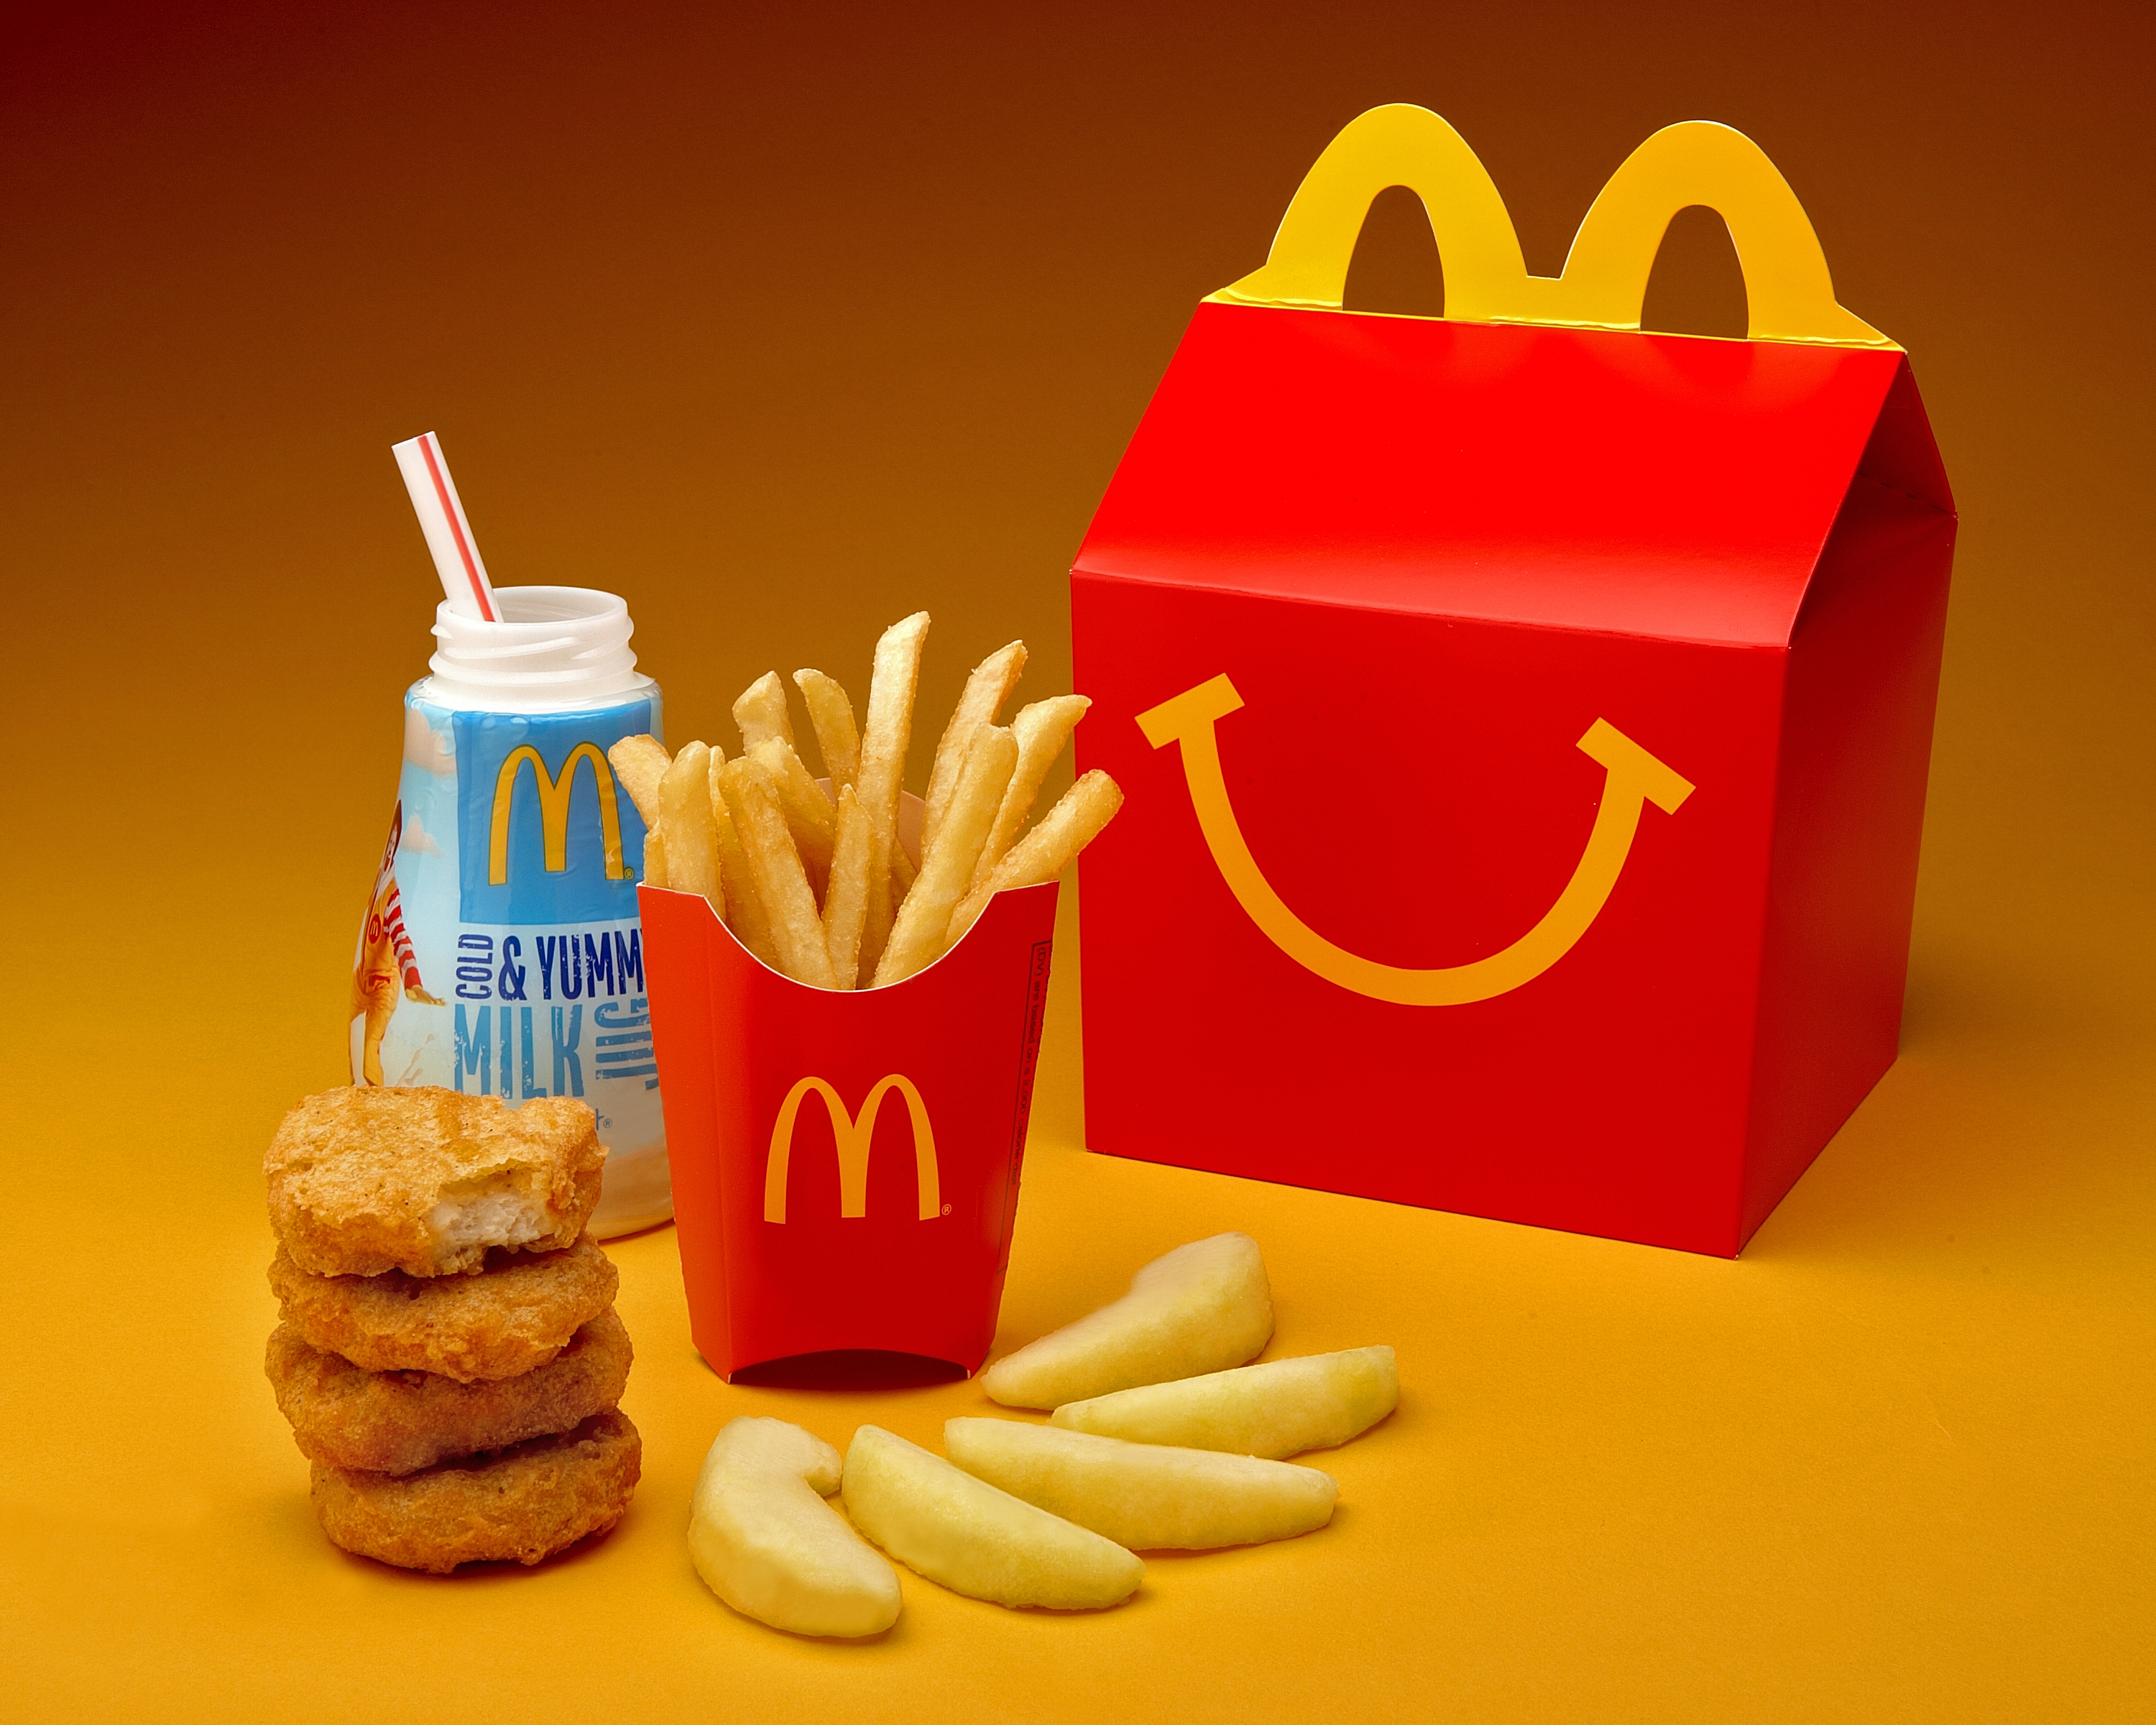 Meet Happy! The unsettling new Happy Meal mascot